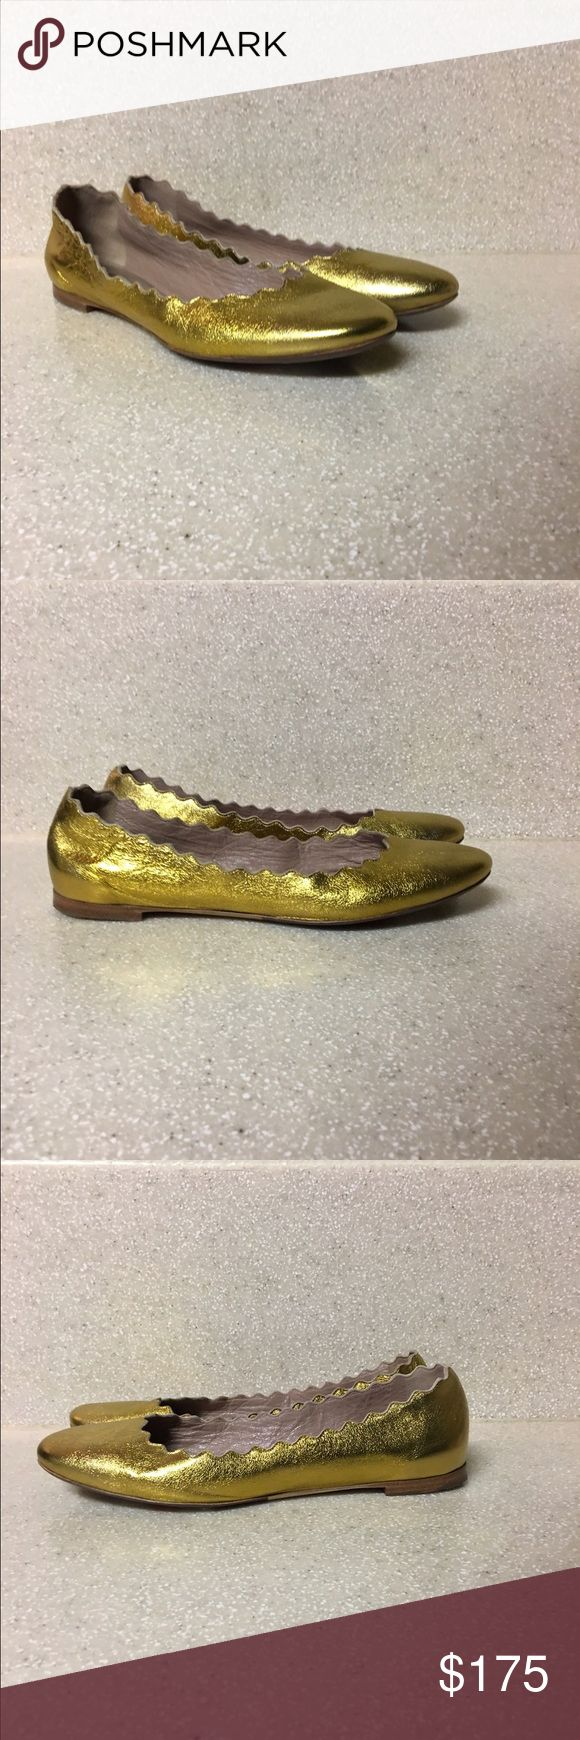 Chloe Lauren Scalloped Ballerina Gold Size 36.5 Chloe 'Lauren' Scalloped Ballerina Flat in Metallic Gold. Size 36.5. Purchased having been a floor display, resulting in the bottom exterior sole being touched up/resoled (please see photos). Overall Excellent Condition. Chloe Shoes Flats & Loafers